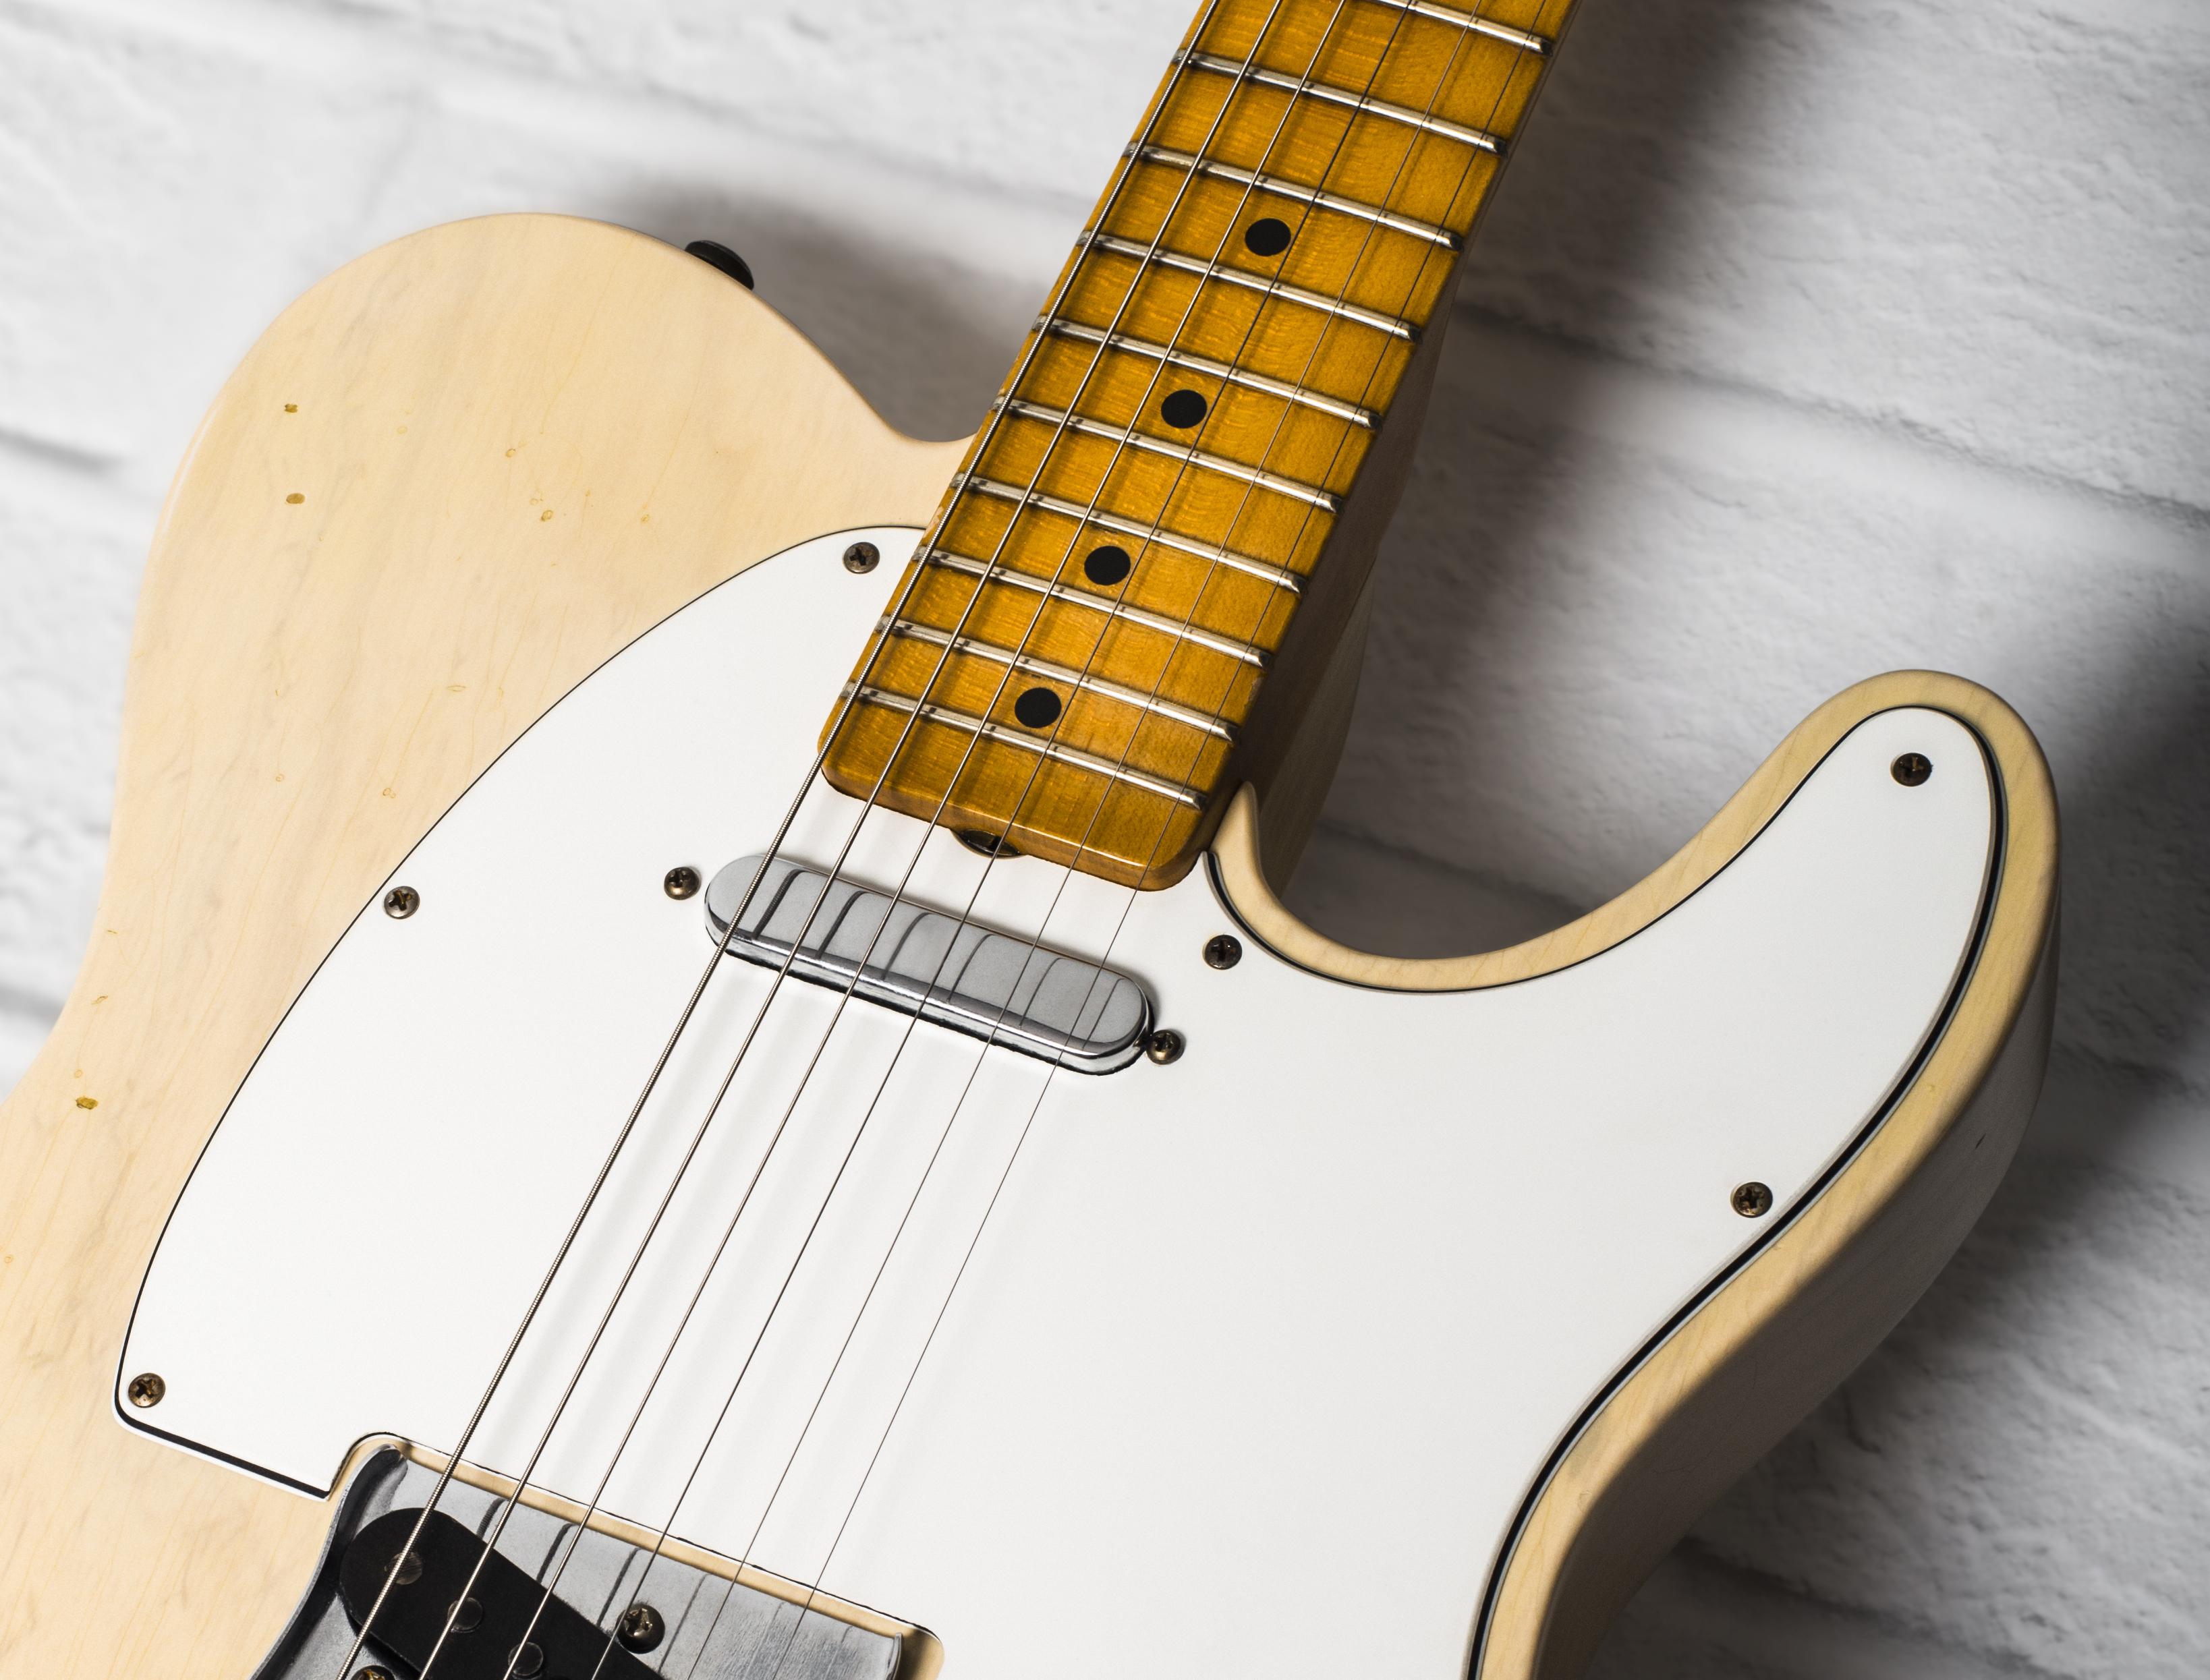 Amazing Bulldog Wiring Thin 3 Single Coil Pickups Flat Ibanez Bass Pickups 3 Coil Pickup Young Wiring Diagram For Gas Furnace BrownBulldog Remote Vehicle Starter System All About\u2026 Telecaster Neck Pickups   The Guitar Magazine | The ..